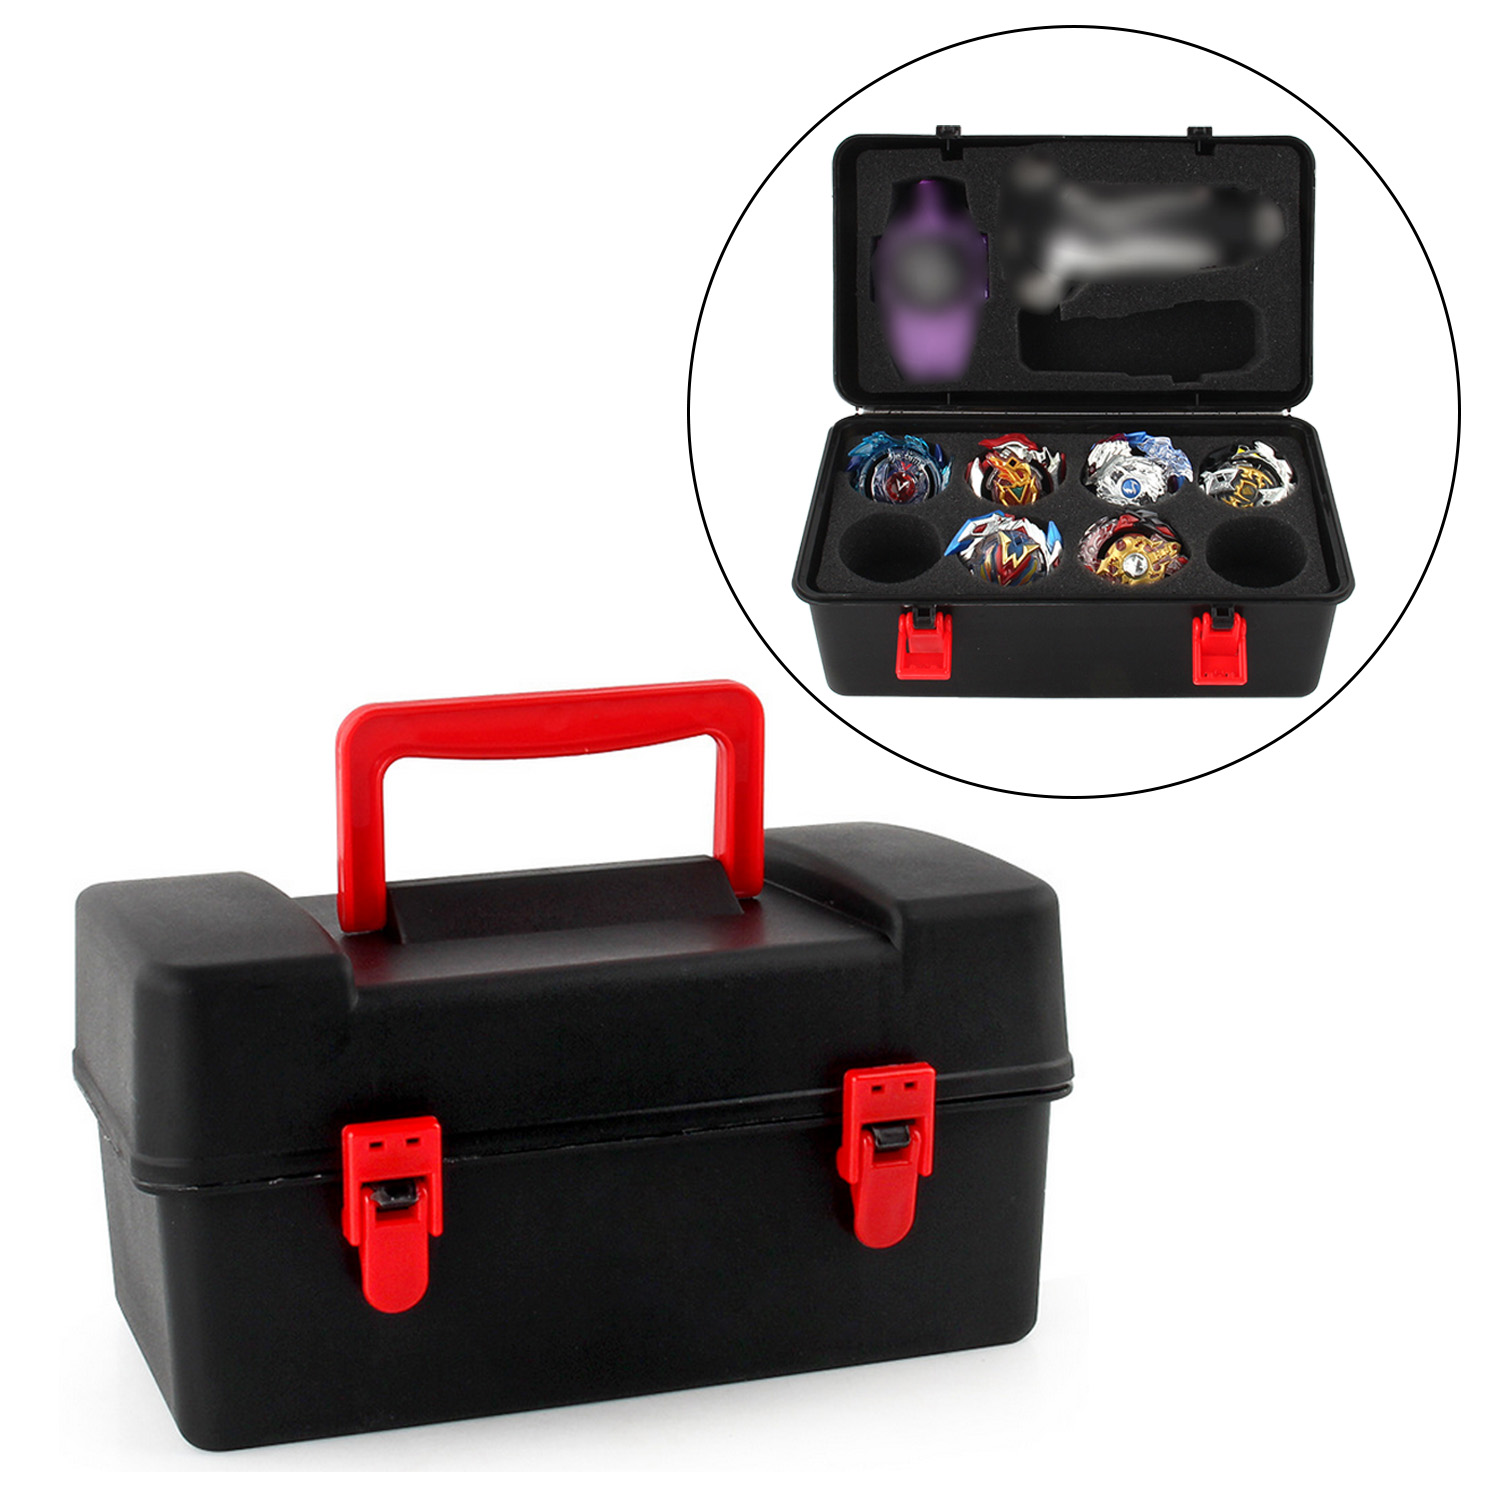 Beyblade Burst Funsion 4d Spinning Top Storage Spinner Carrying Case Box Locker Case Organizer Burst Toys for Kids